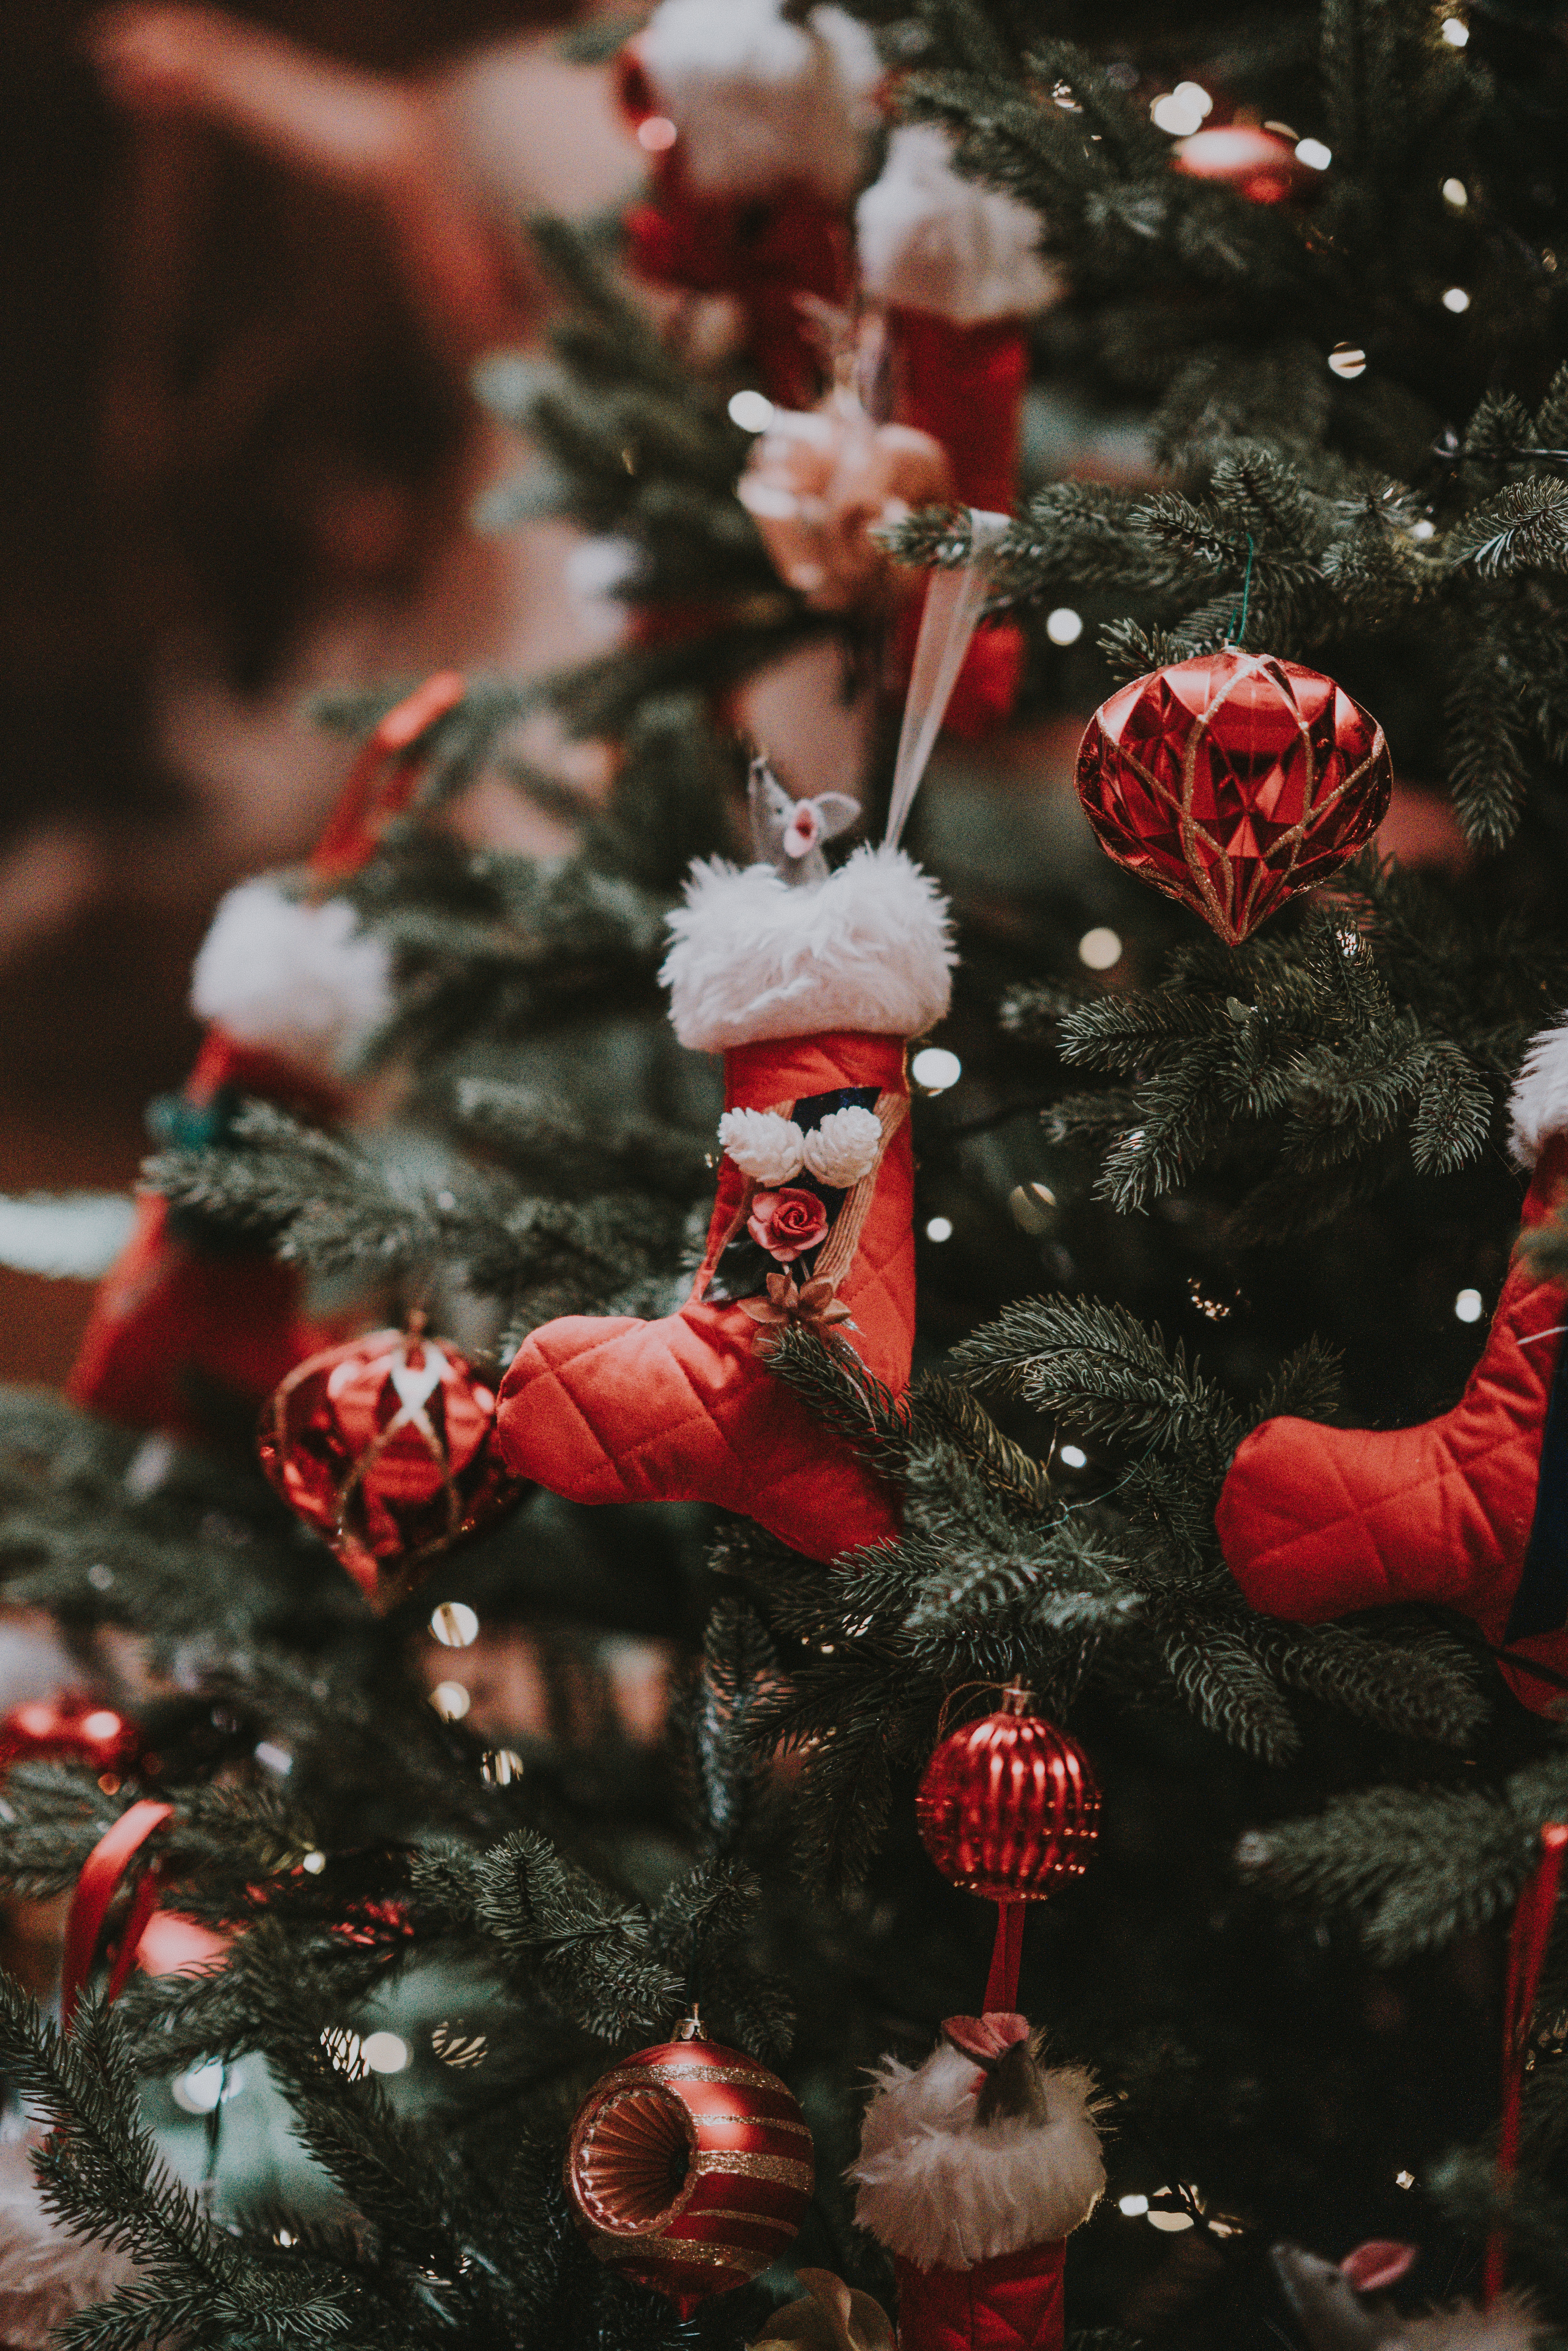 100448 download wallpaper Holidays, Christmas Decorations, Christmas Tree Toys, Christmas, New Year, Decoration, Holiday screensavers and pictures for free